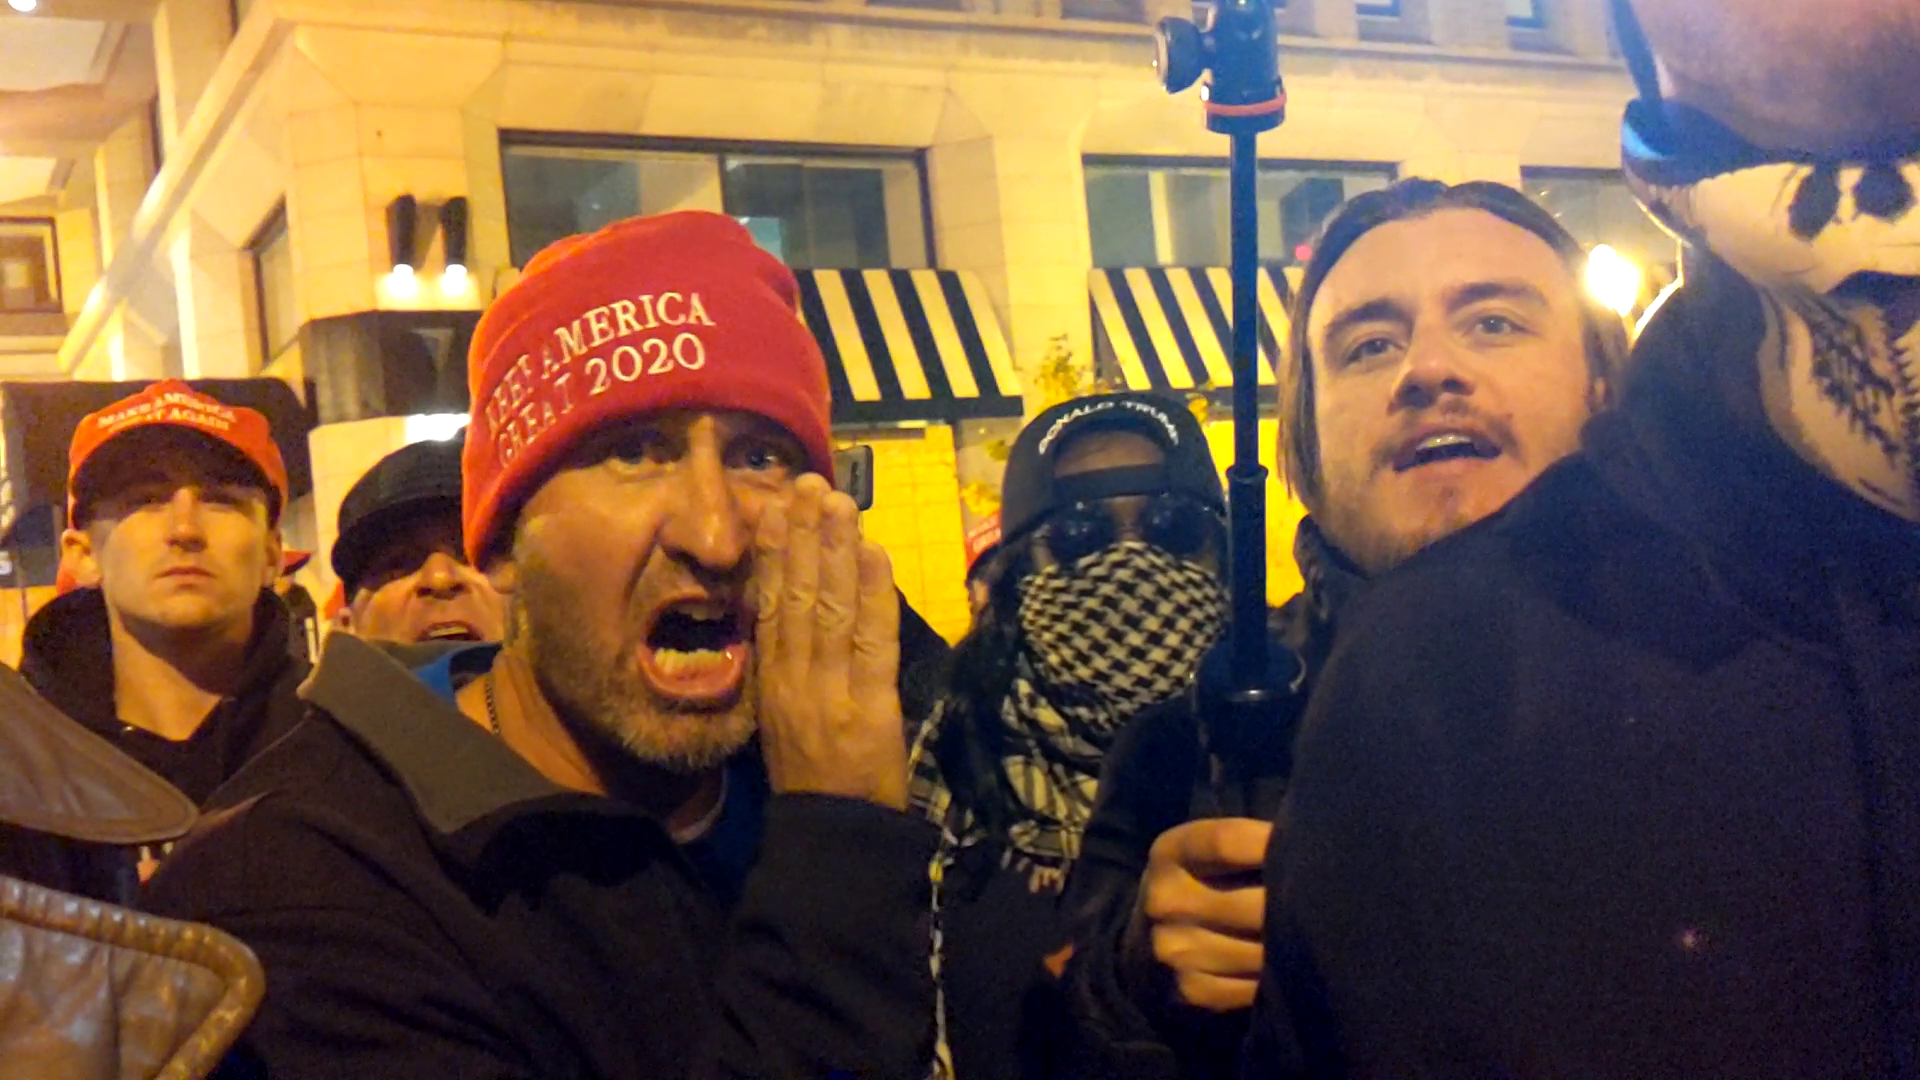 A crowd at night. A man in a red MAGA beanie yells something with his hand at the side of his face.